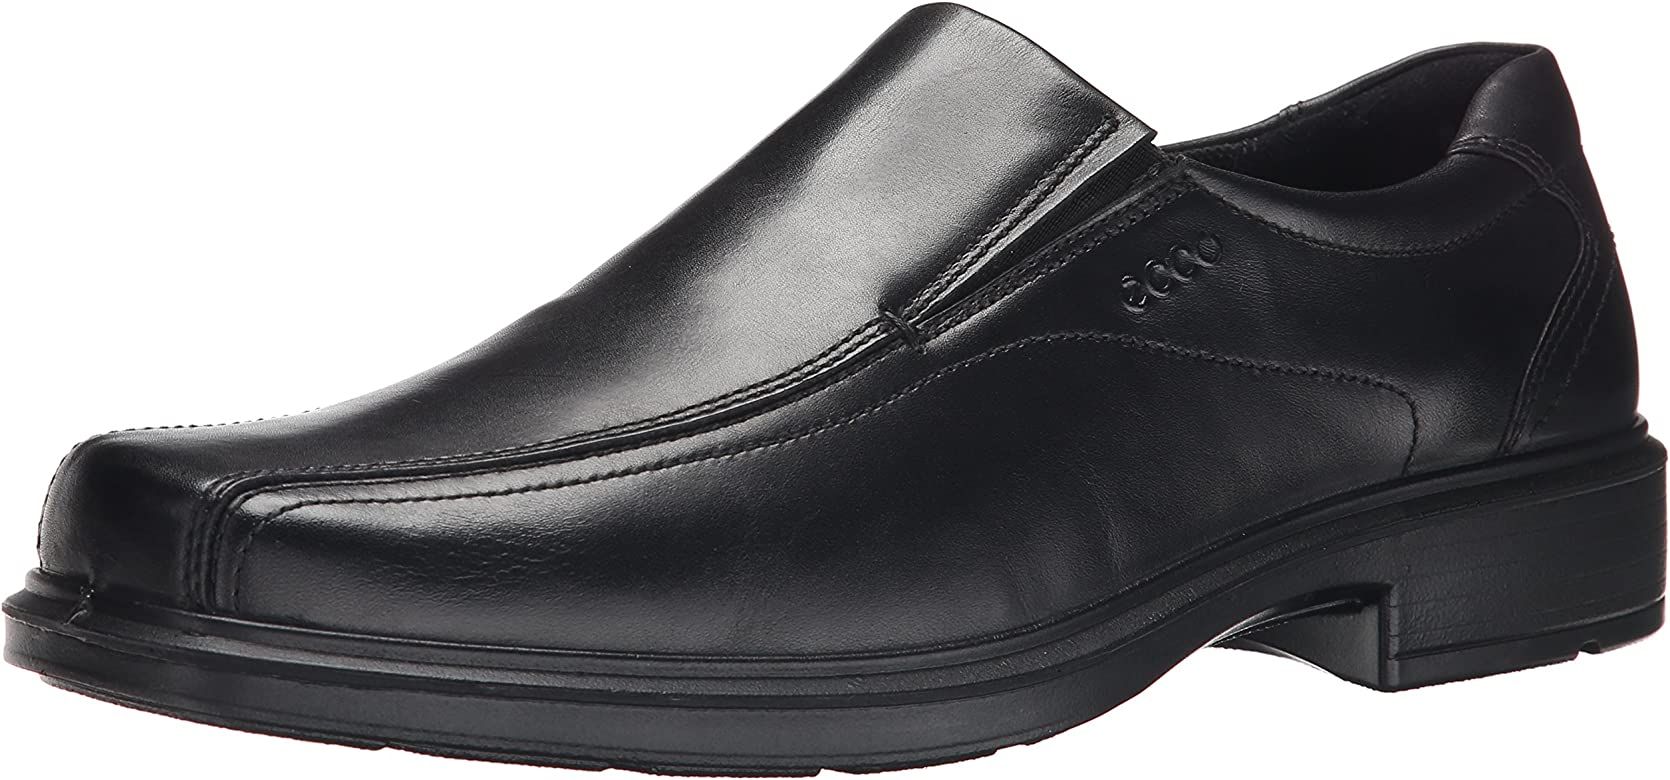 9b9bd653a1d77 Amazon.com | ECCO Men's Helsinki Slip-On, Black, 39 EU (US Men's 5 ...